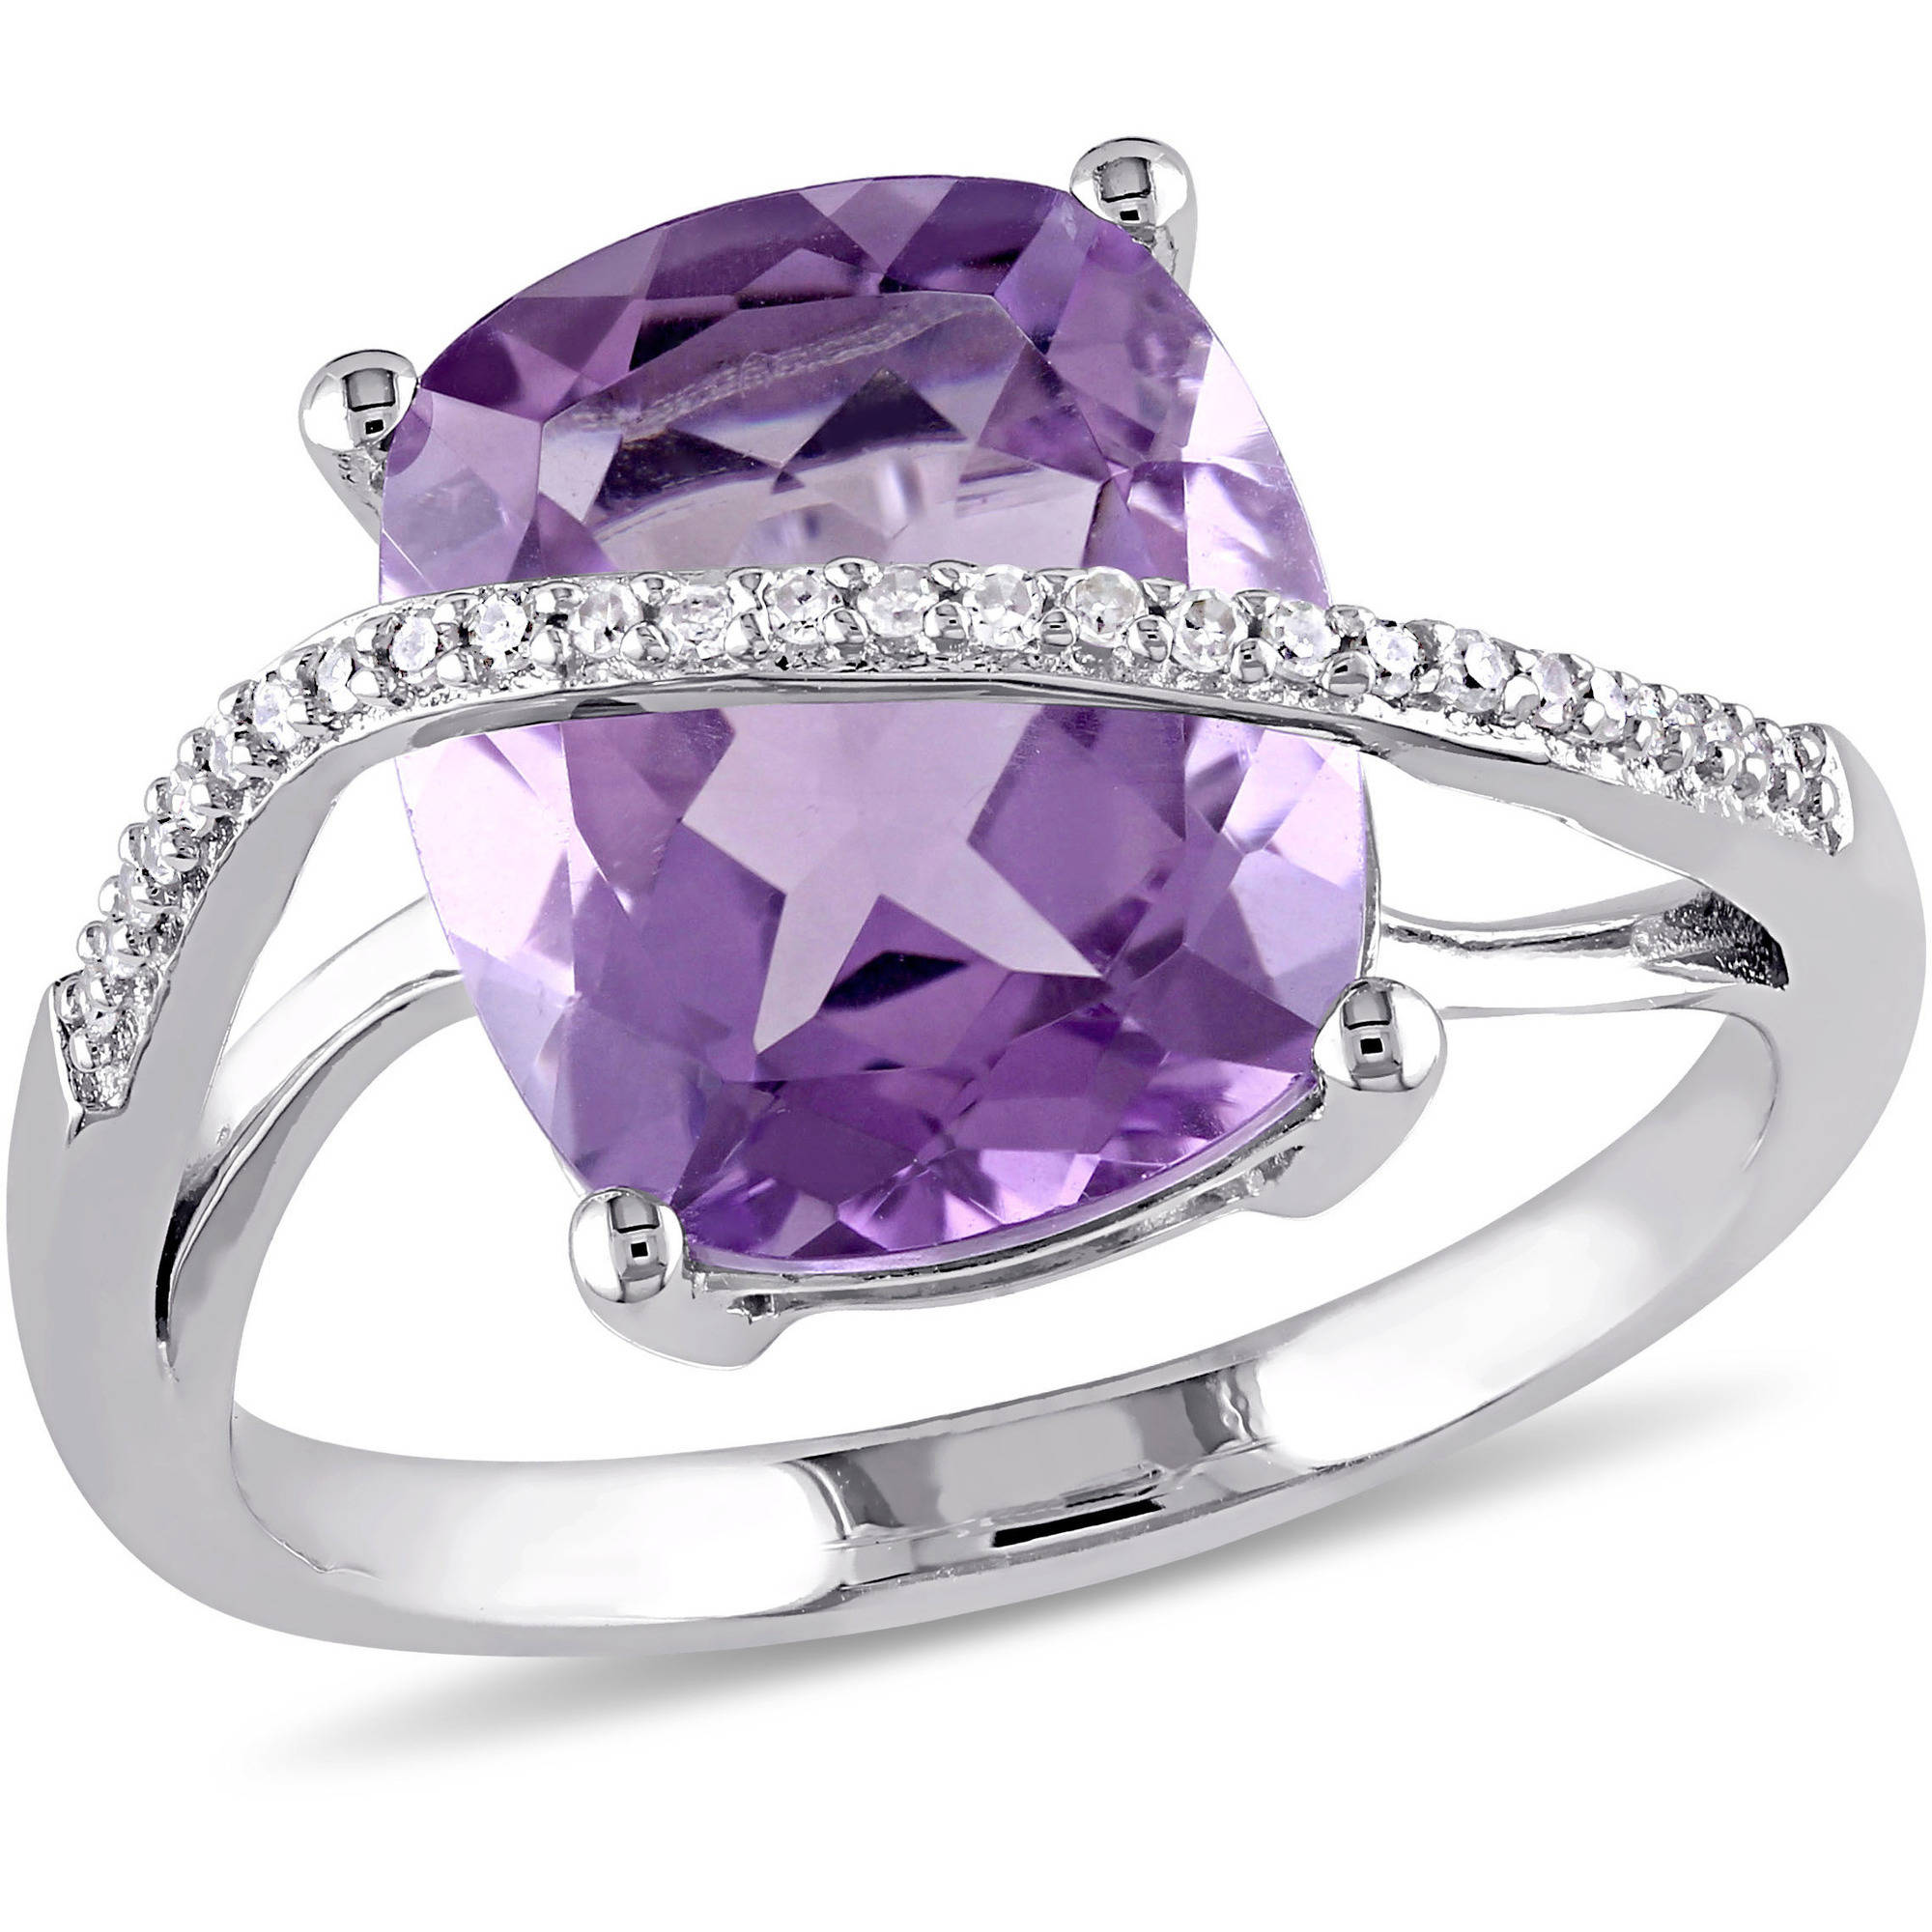 5 Carat T.G.W. Amethyst and 1/10 Carat T.W. Diamond Sterling Silver Cross-Over Cocktail Ring